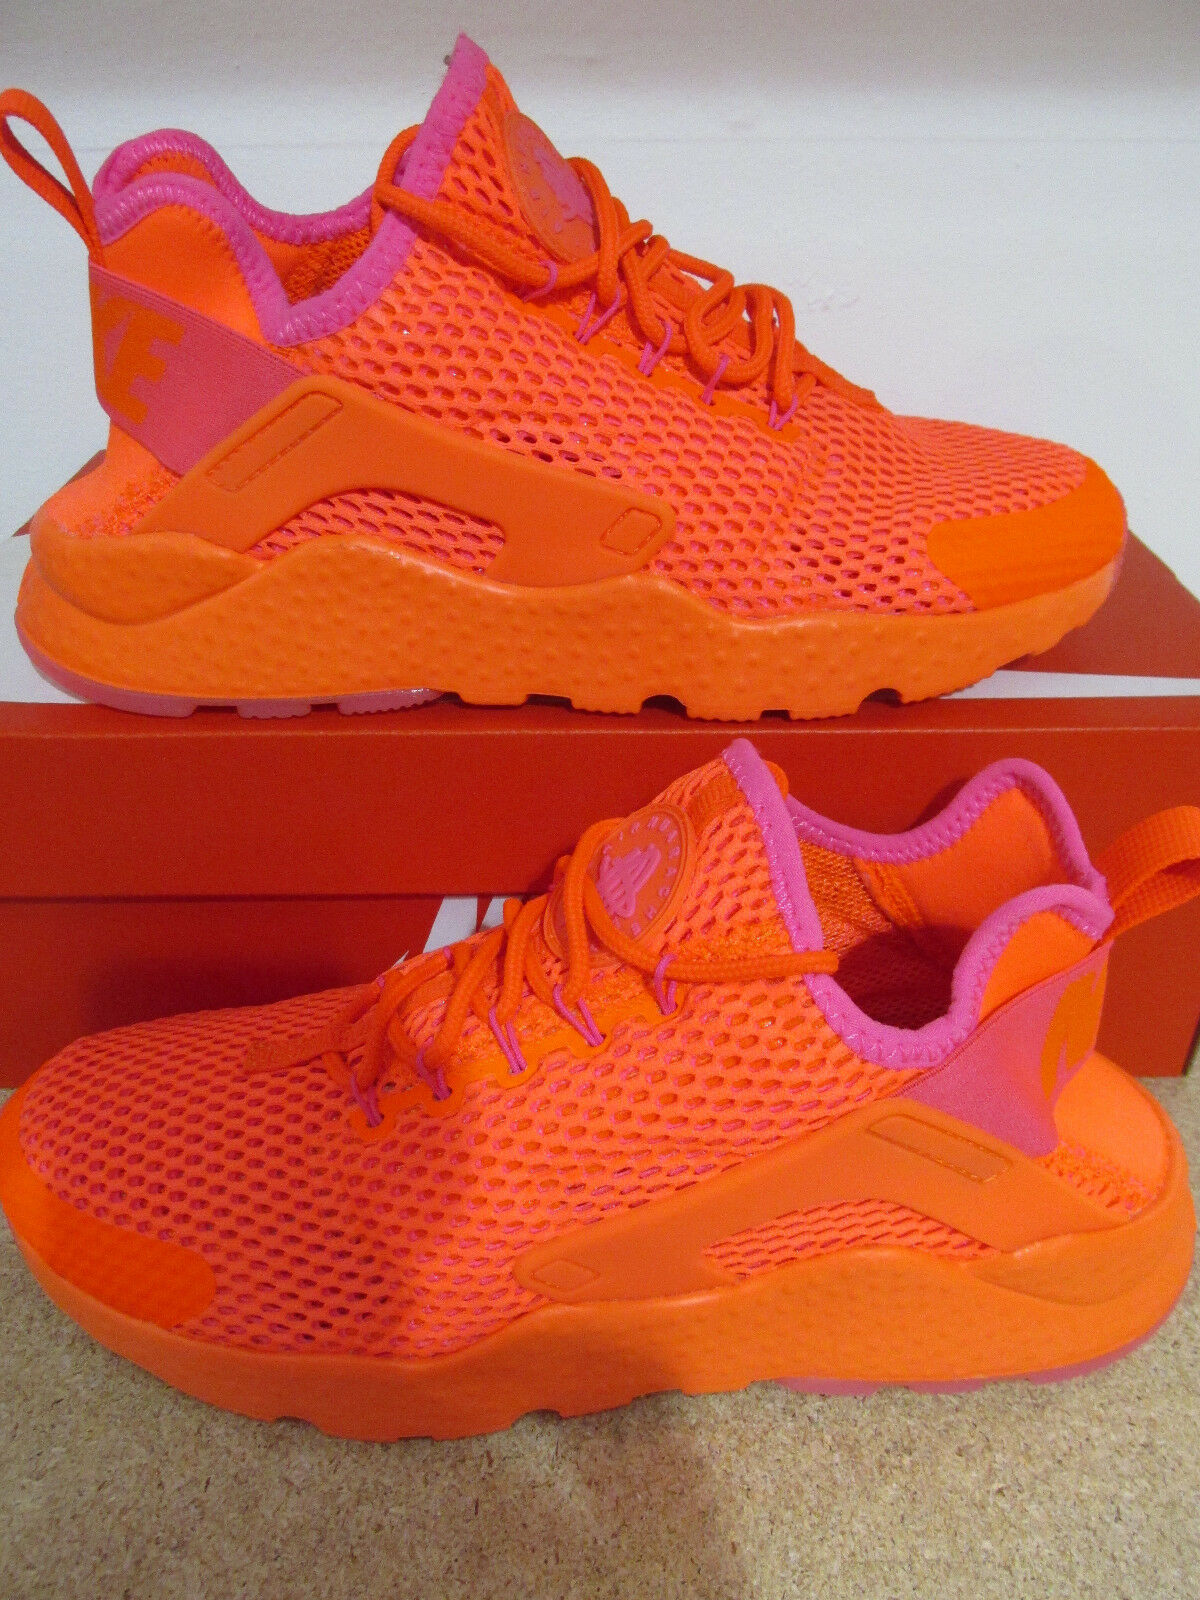 Nike Wo Hommes Huarache Run Ultra BR Shoes Trainers 833292 800 Sneakers Shoes BR 4930c6